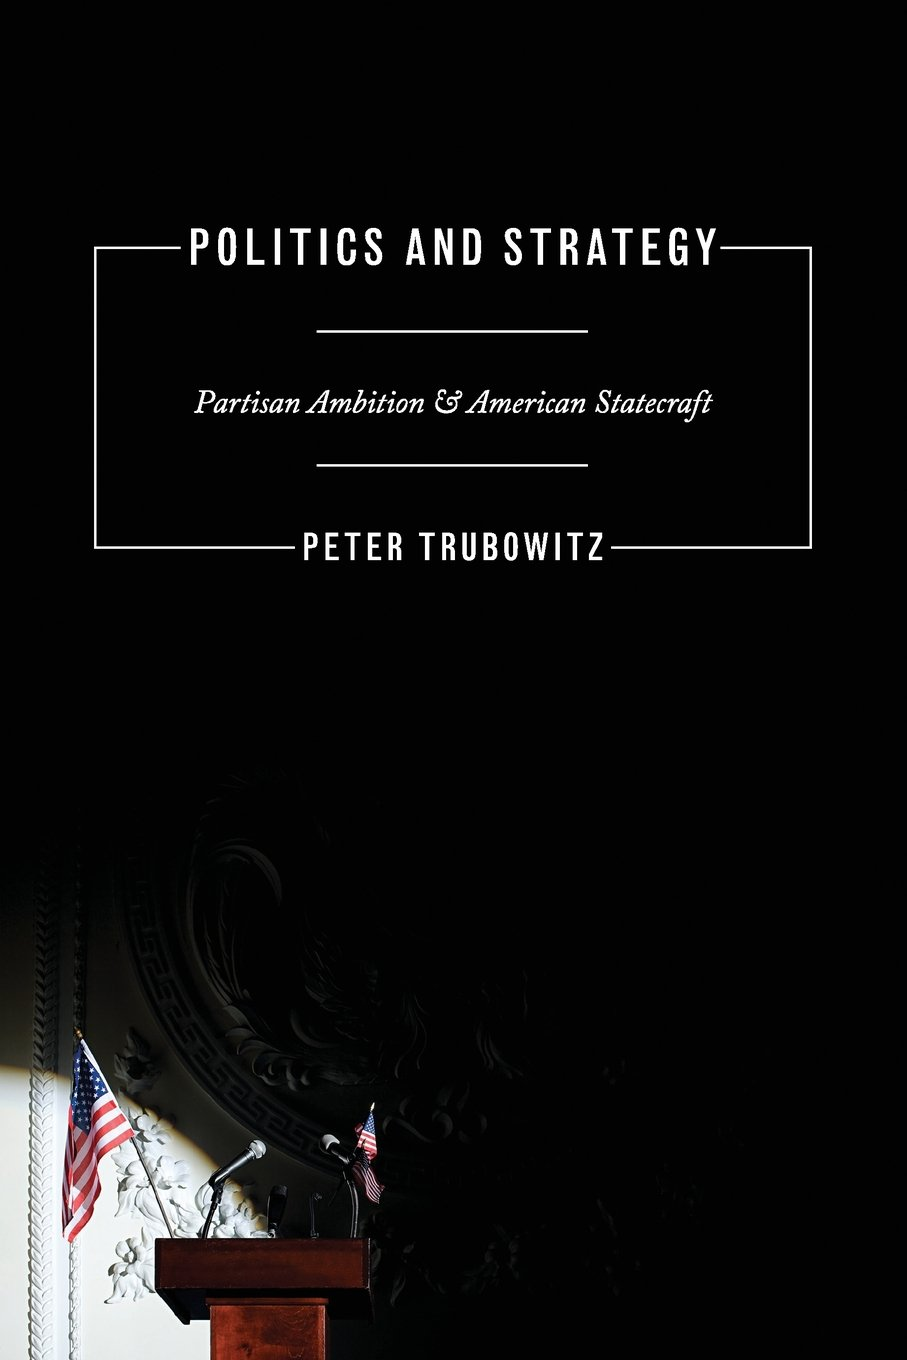 Politics and Strategy: Partisan Ambition and American Statecraft (Princeton Studies in International History and Politics) ebook